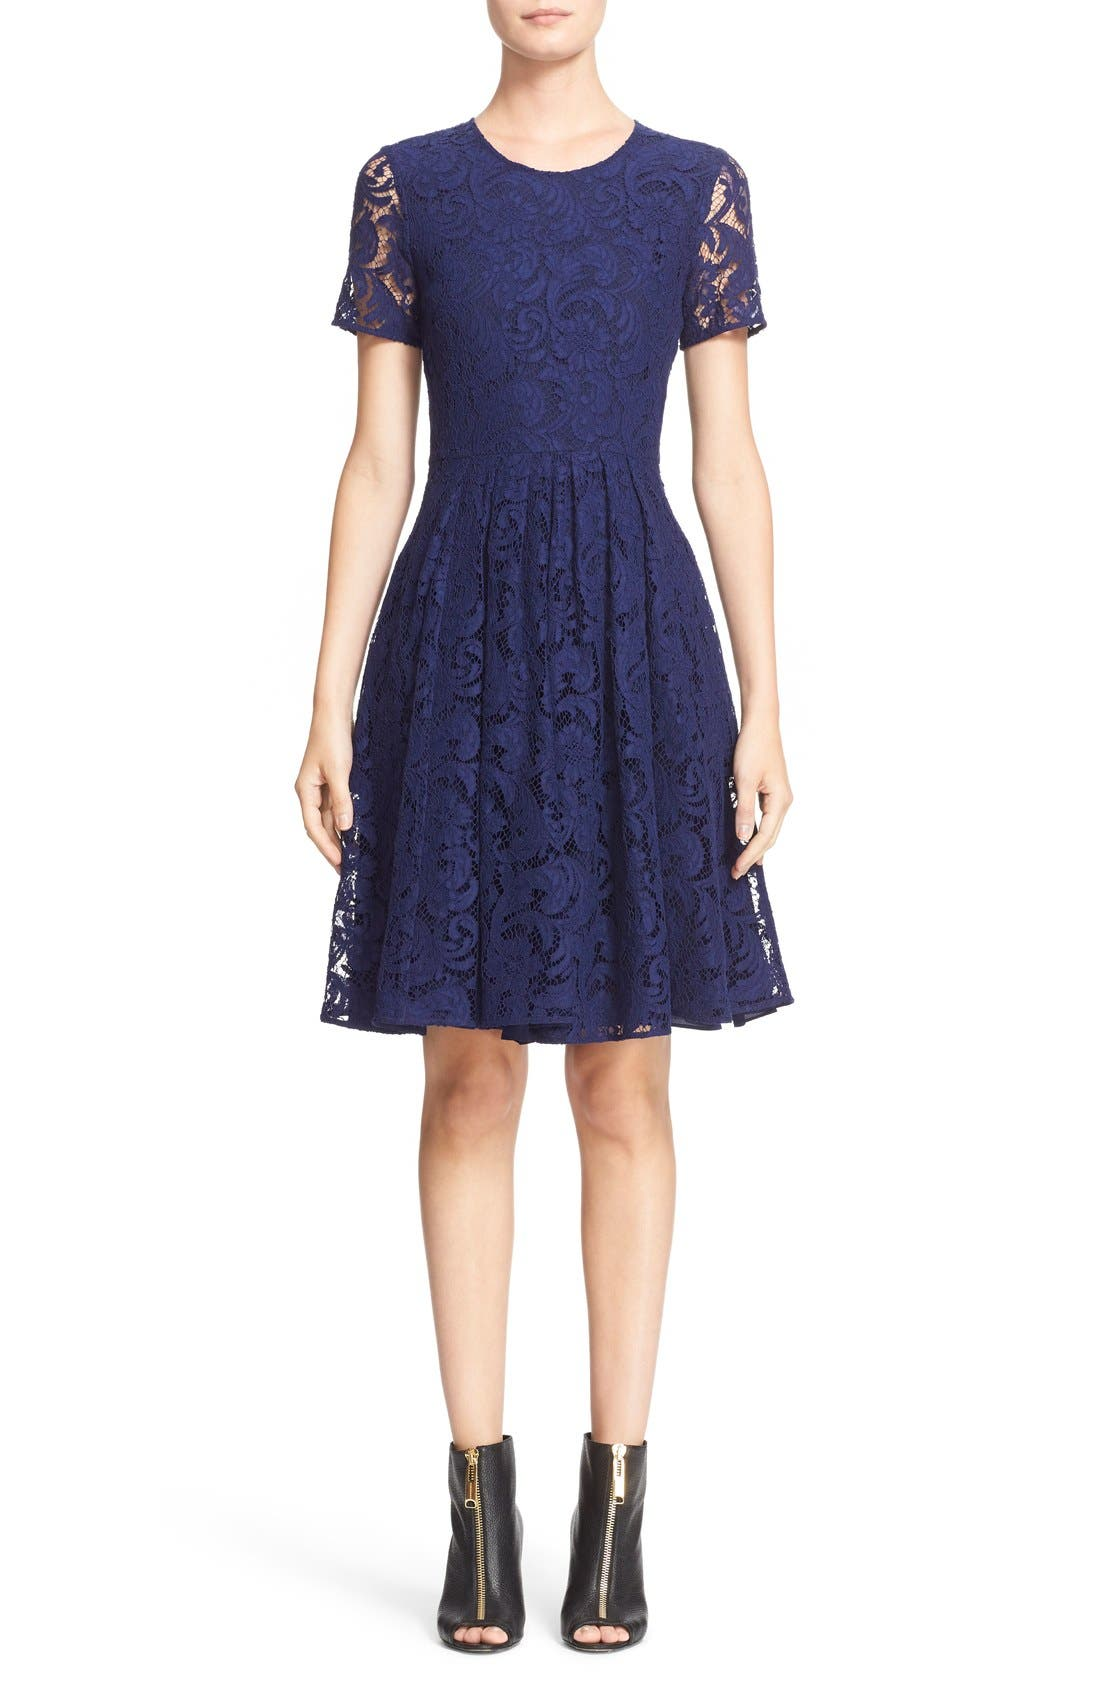 BURBERRY LONDON 'Alice' Short Sleeve Corded Lace Fit & Flare Dress, Main, color, 495